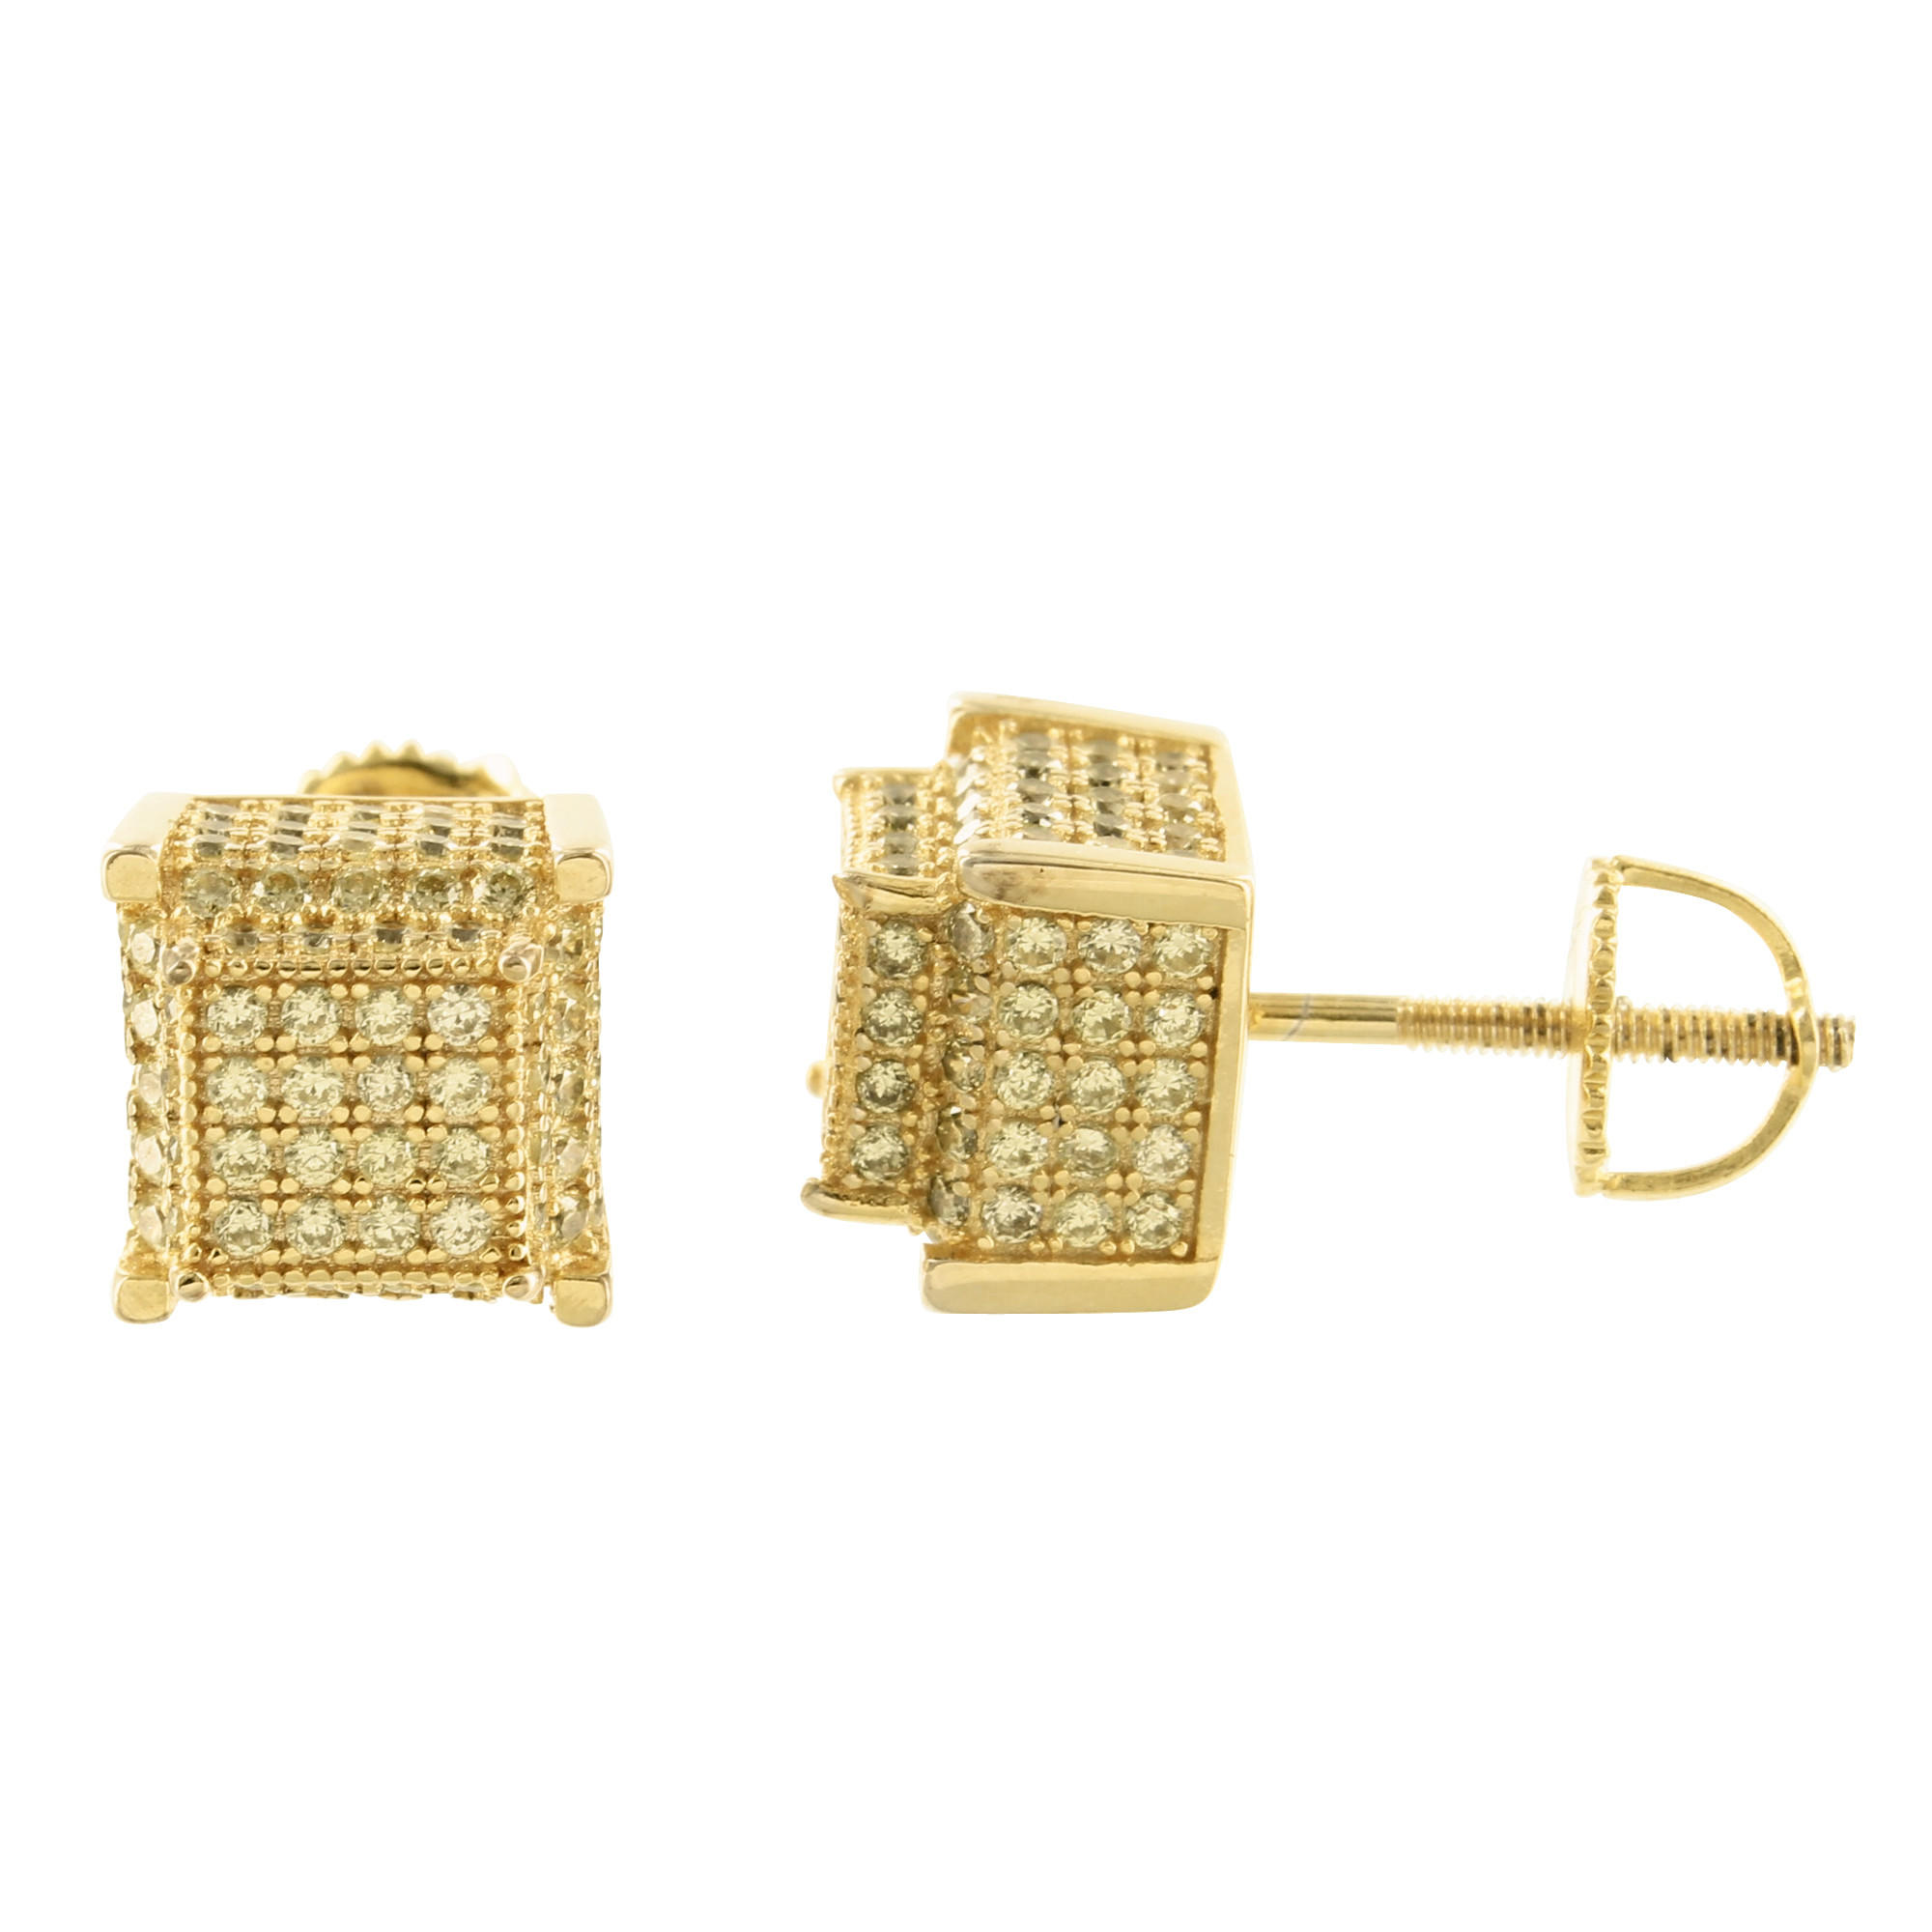 Image of Mens 14K Gold Finish Canary Cube Earrings